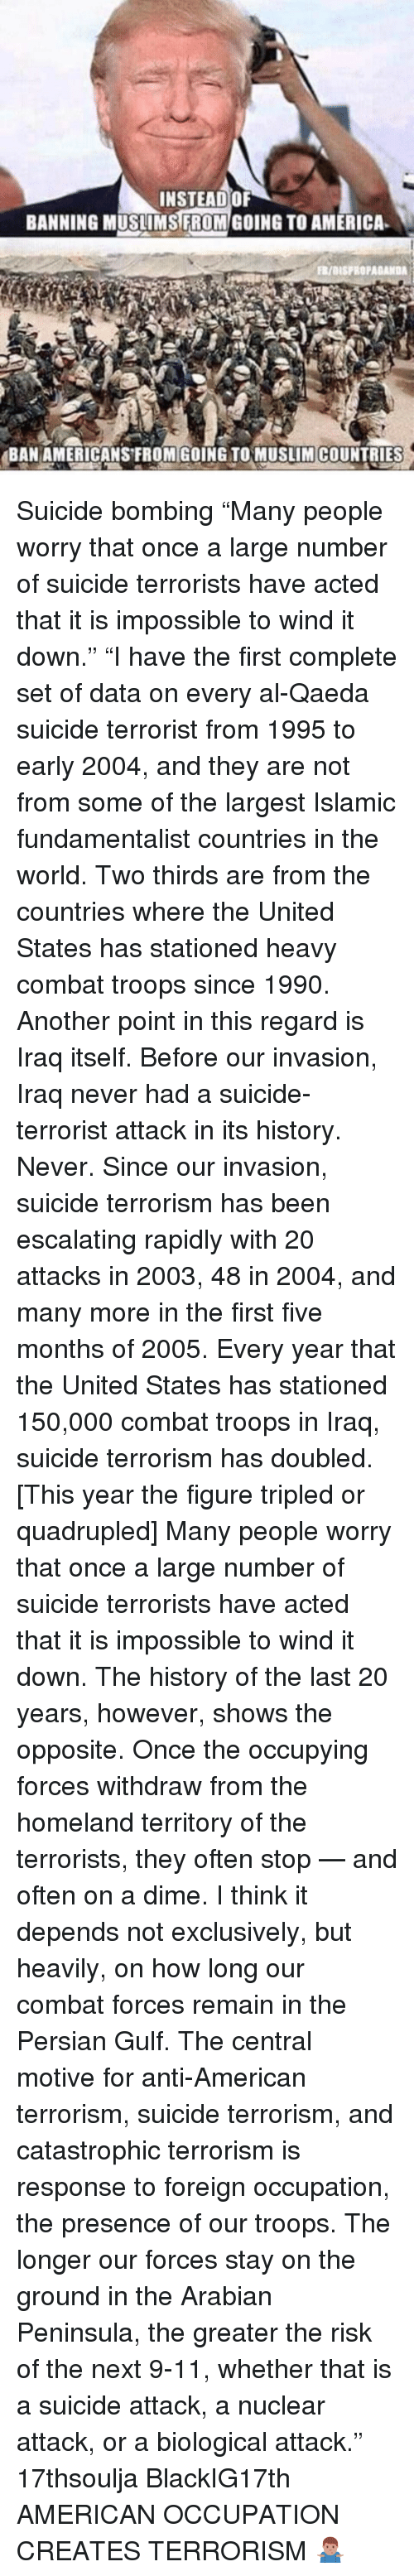 "Quadrupled: INSTEAD OF  BANNING MUSLIMS FROM GOING TO AMERICA  FR/aISFROPAGANDA  BAN AMERICANS FROM GOING TO MUSLIM COUNTRIES Suicide bombing ""Many people worry that once a large number of suicide terrorists have acted that it is impossible to wind it down."" ""I have the first complete set of data on every al-Qaeda suicide terrorist from 1995 to early 2004, and they are not from some of the largest Islamic fundamentalist countries in the world. Two thirds are from the countries where the United States has stationed heavy combat troops since 1990. Another point in this regard is Iraq itself. Before our invasion, Iraq never had a suicide-terrorist attack in its history. Never. Since our invasion, suicide terrorism has been escalating rapidly with 20 attacks in 2003, 48 in 2004, and many more in the first five months of 2005. Every year that the United States has stationed 150,000 combat troops in Iraq, suicide terrorism has doubled. [This year the figure tripled or quadrupled] Many people worry that once a large number of suicide terrorists have acted that it is impossible to wind it down. The history of the last 20 years, however, shows the opposite. Once the occupying forces withdraw from the homeland territory of the terrorists, they often stop — and often on a dime. I think it depends not exclusively, but heavily, on how long our combat forces remain in the Persian Gulf. The central motive for anti-American terrorism, suicide terrorism, and catastrophic terrorism is response to foreign occupation, the presence of our troops. The longer our forces stay on the ground in the Arabian Peninsula, the greater the risk of the next 9-11, whether that is a suicide attack, a nuclear attack, or a biological attack."" 17thsoulja BlackIG17th AMERICAN OCCUPATION CREATES TERRORISM 🤷🏽‍♂️"